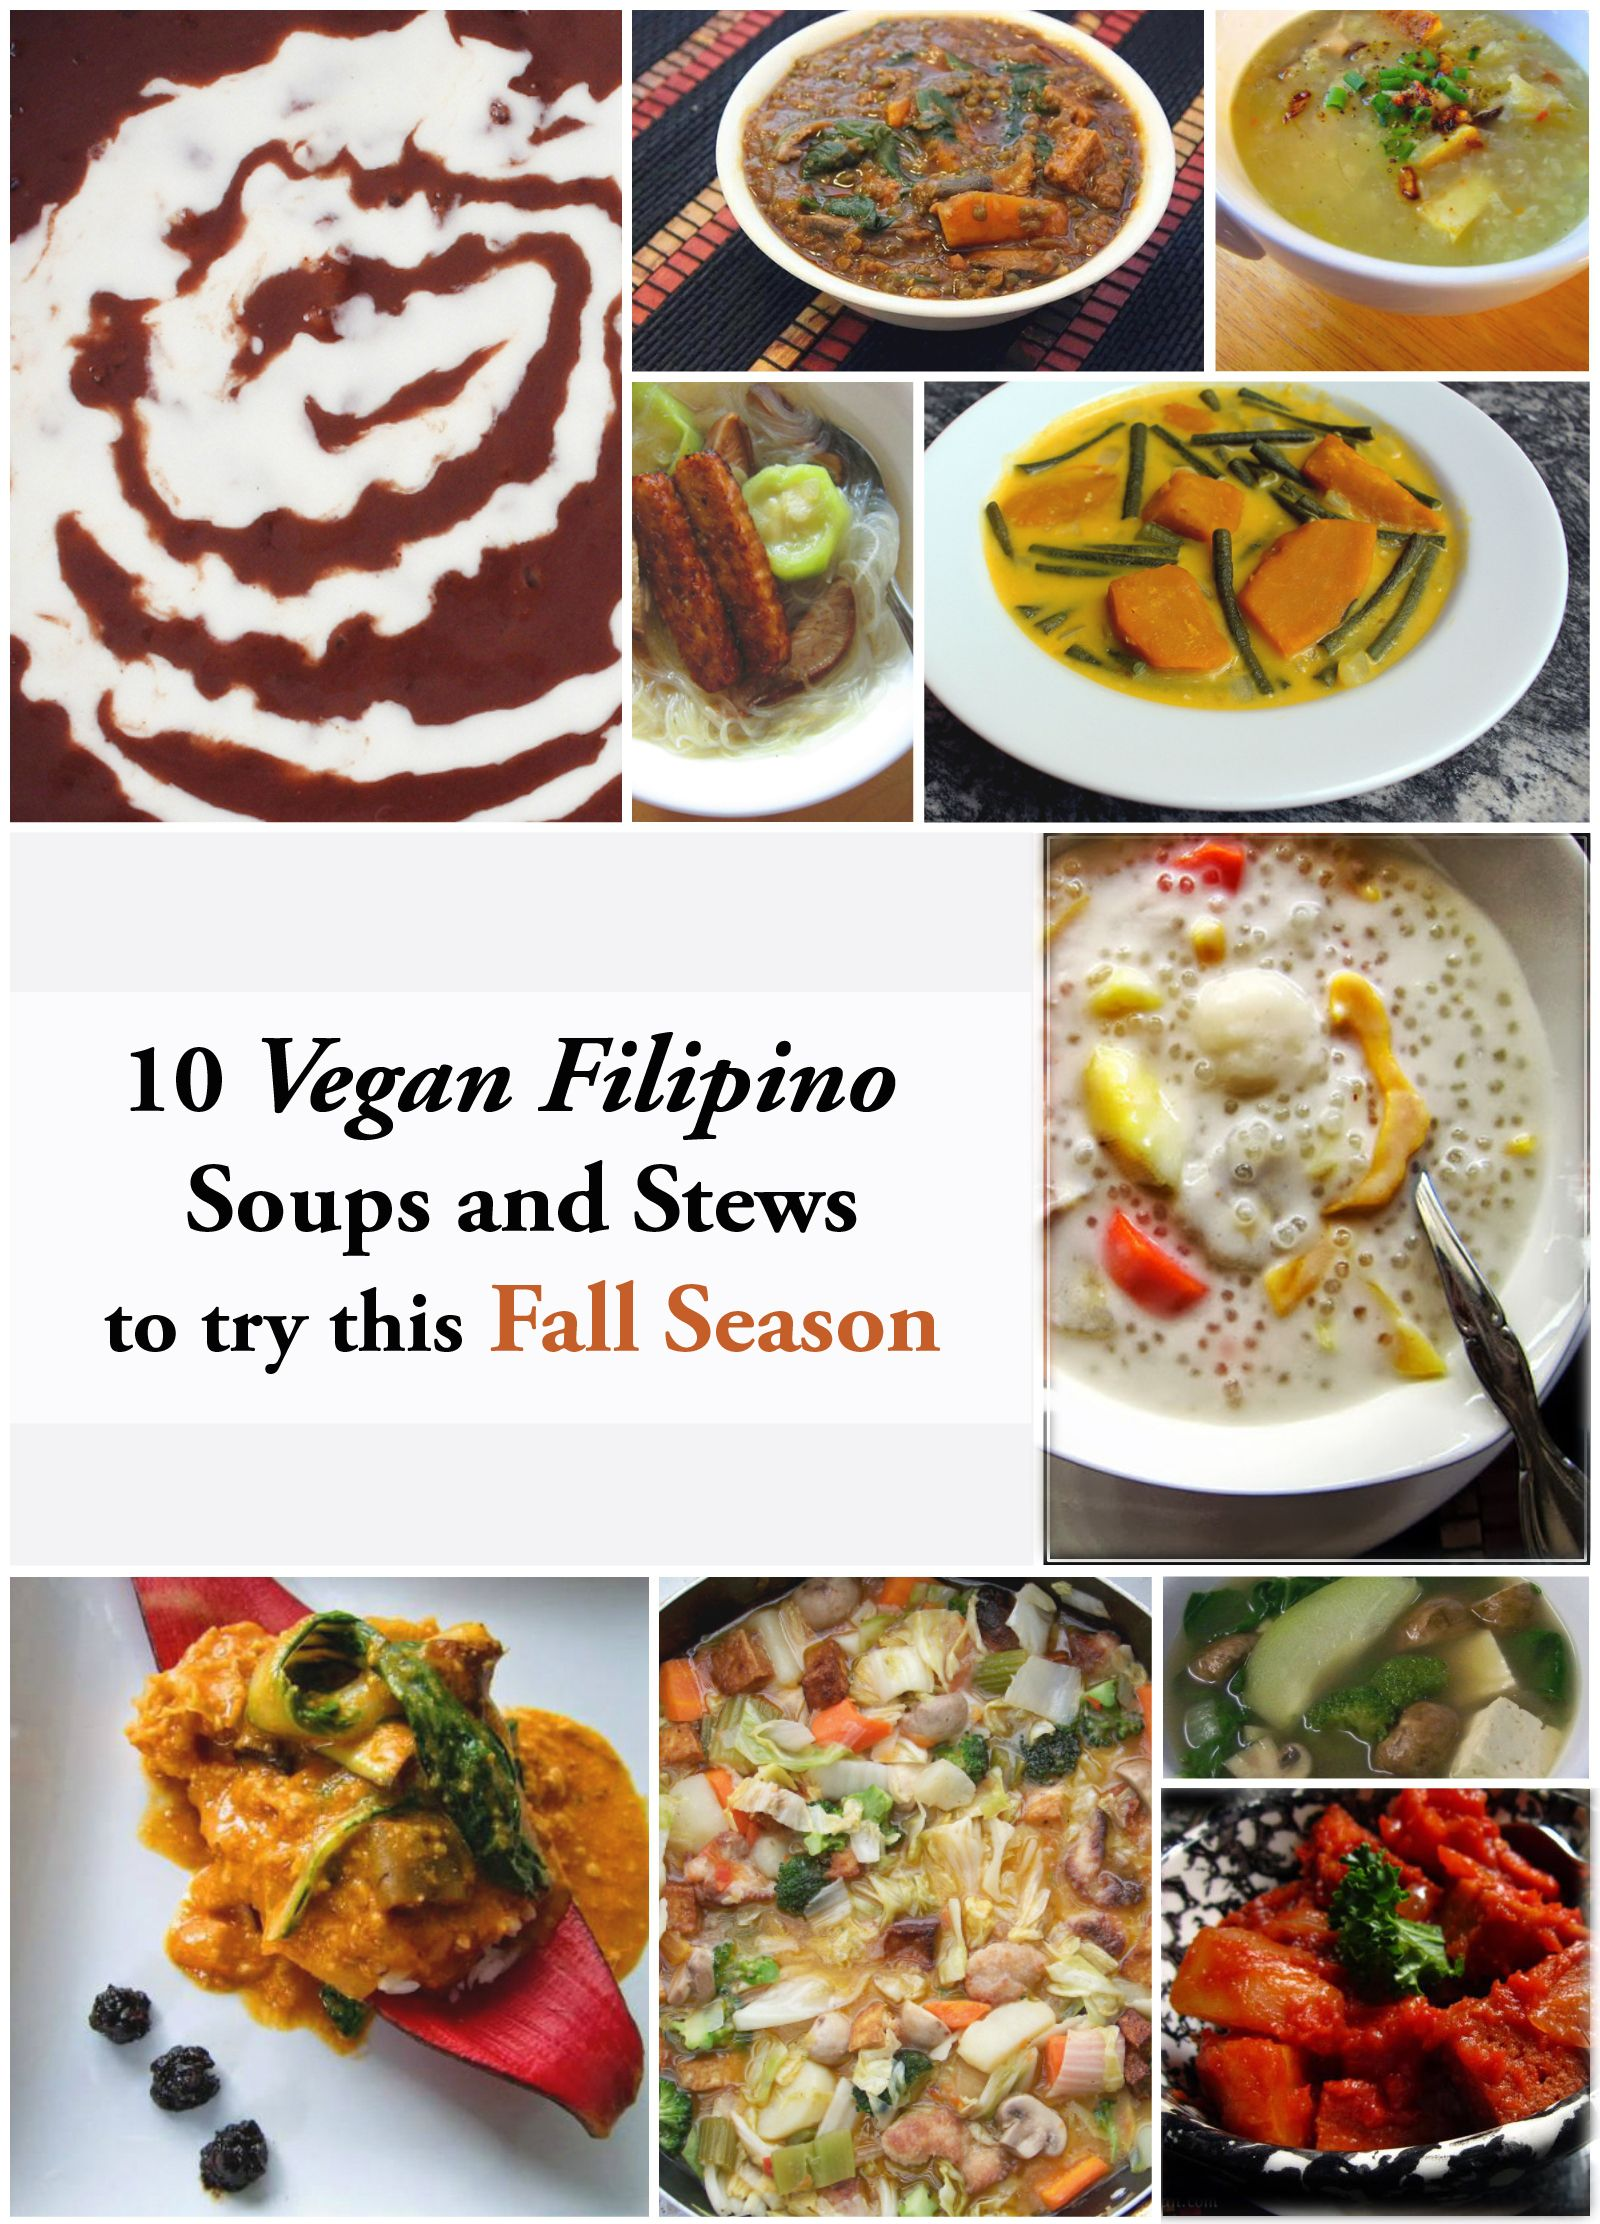 10 Vegan Filipino Soups And Stews For Fall Recipes To Try